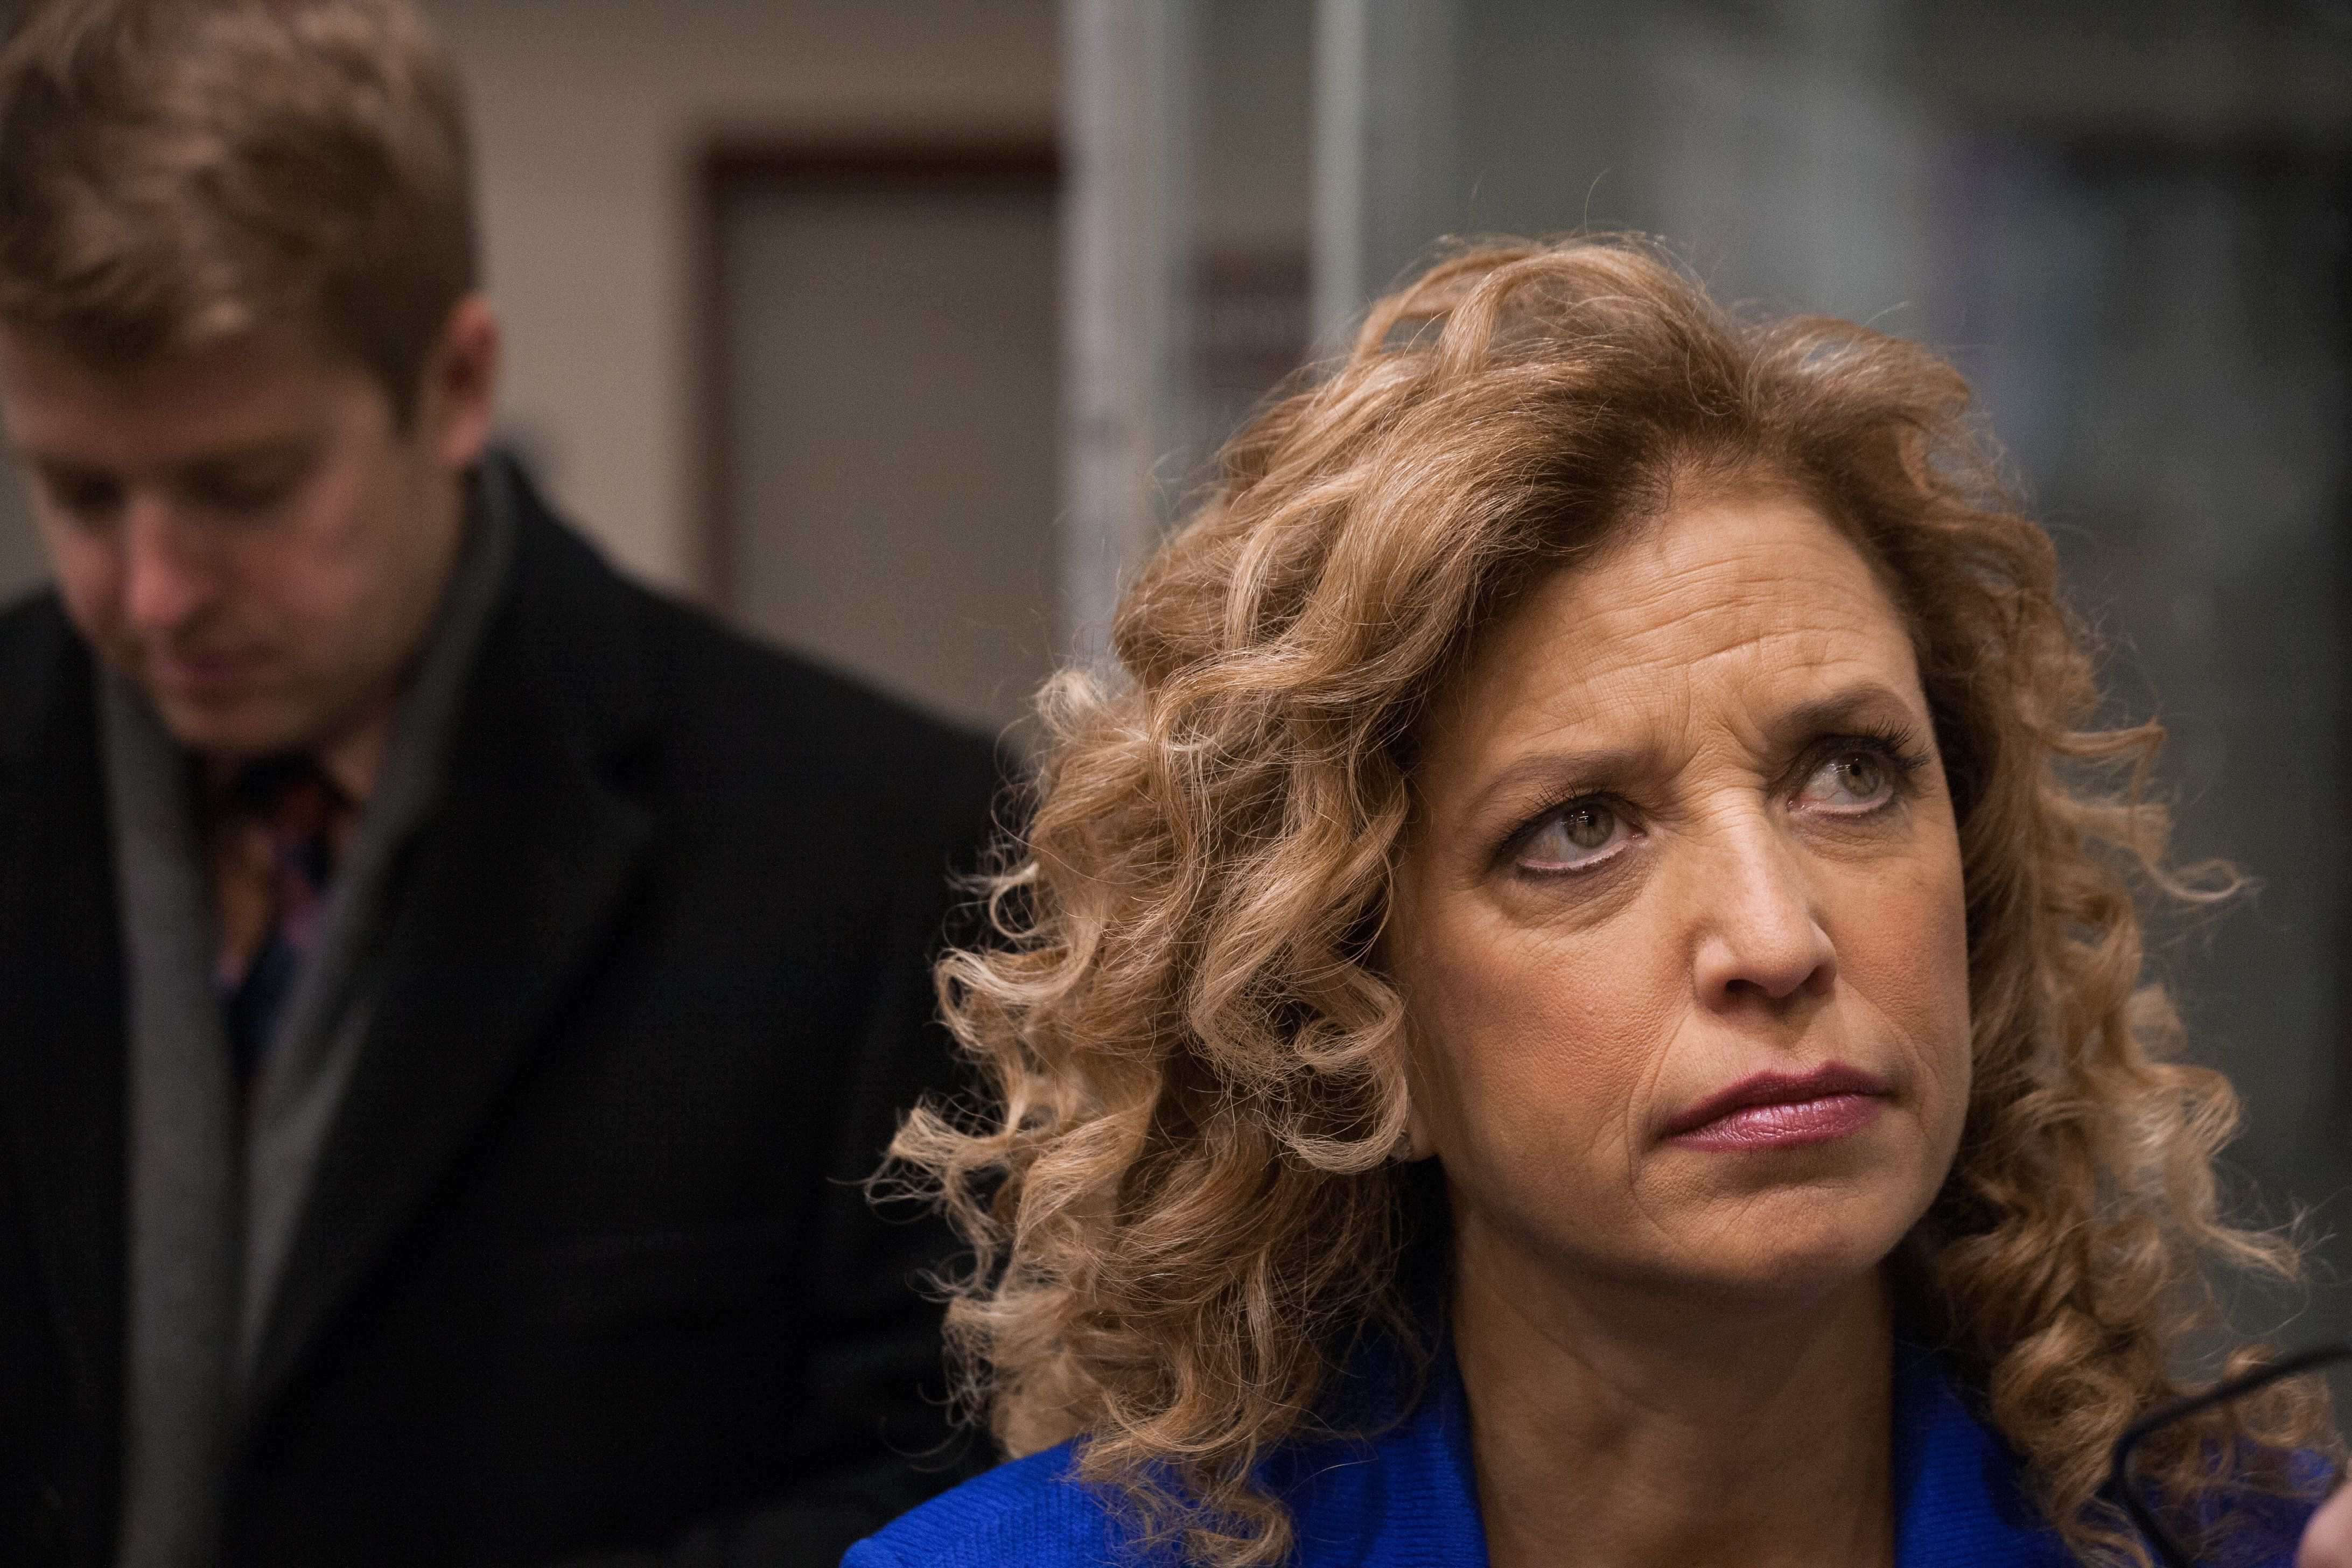 SAINT ANSELM COLLEGE, MANCHESTER, NEW HAMPSHIRE, UNITED STATES - 2015/12/19: Congresswoman and DNC Chair Debbie Wasserman-Schultz speaks with the press at the third Democratic presidential debate. (Photo by Luke William Pasley/Pacific Press/LightRocket via Getty Images)